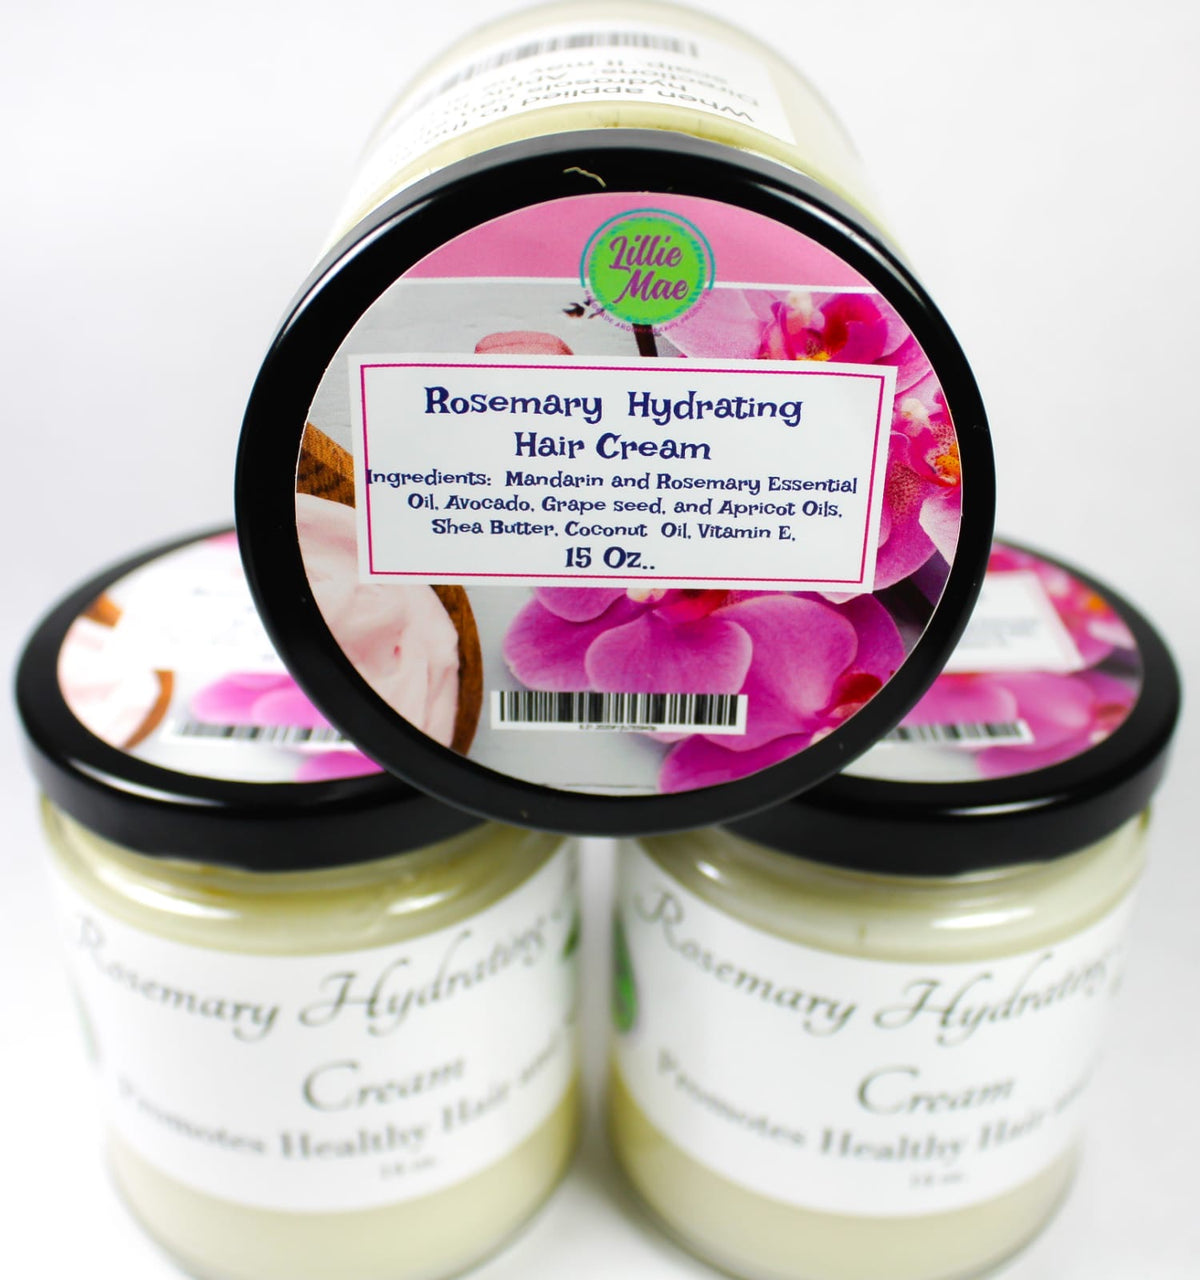 Rosemary Hydrating Hair Cream